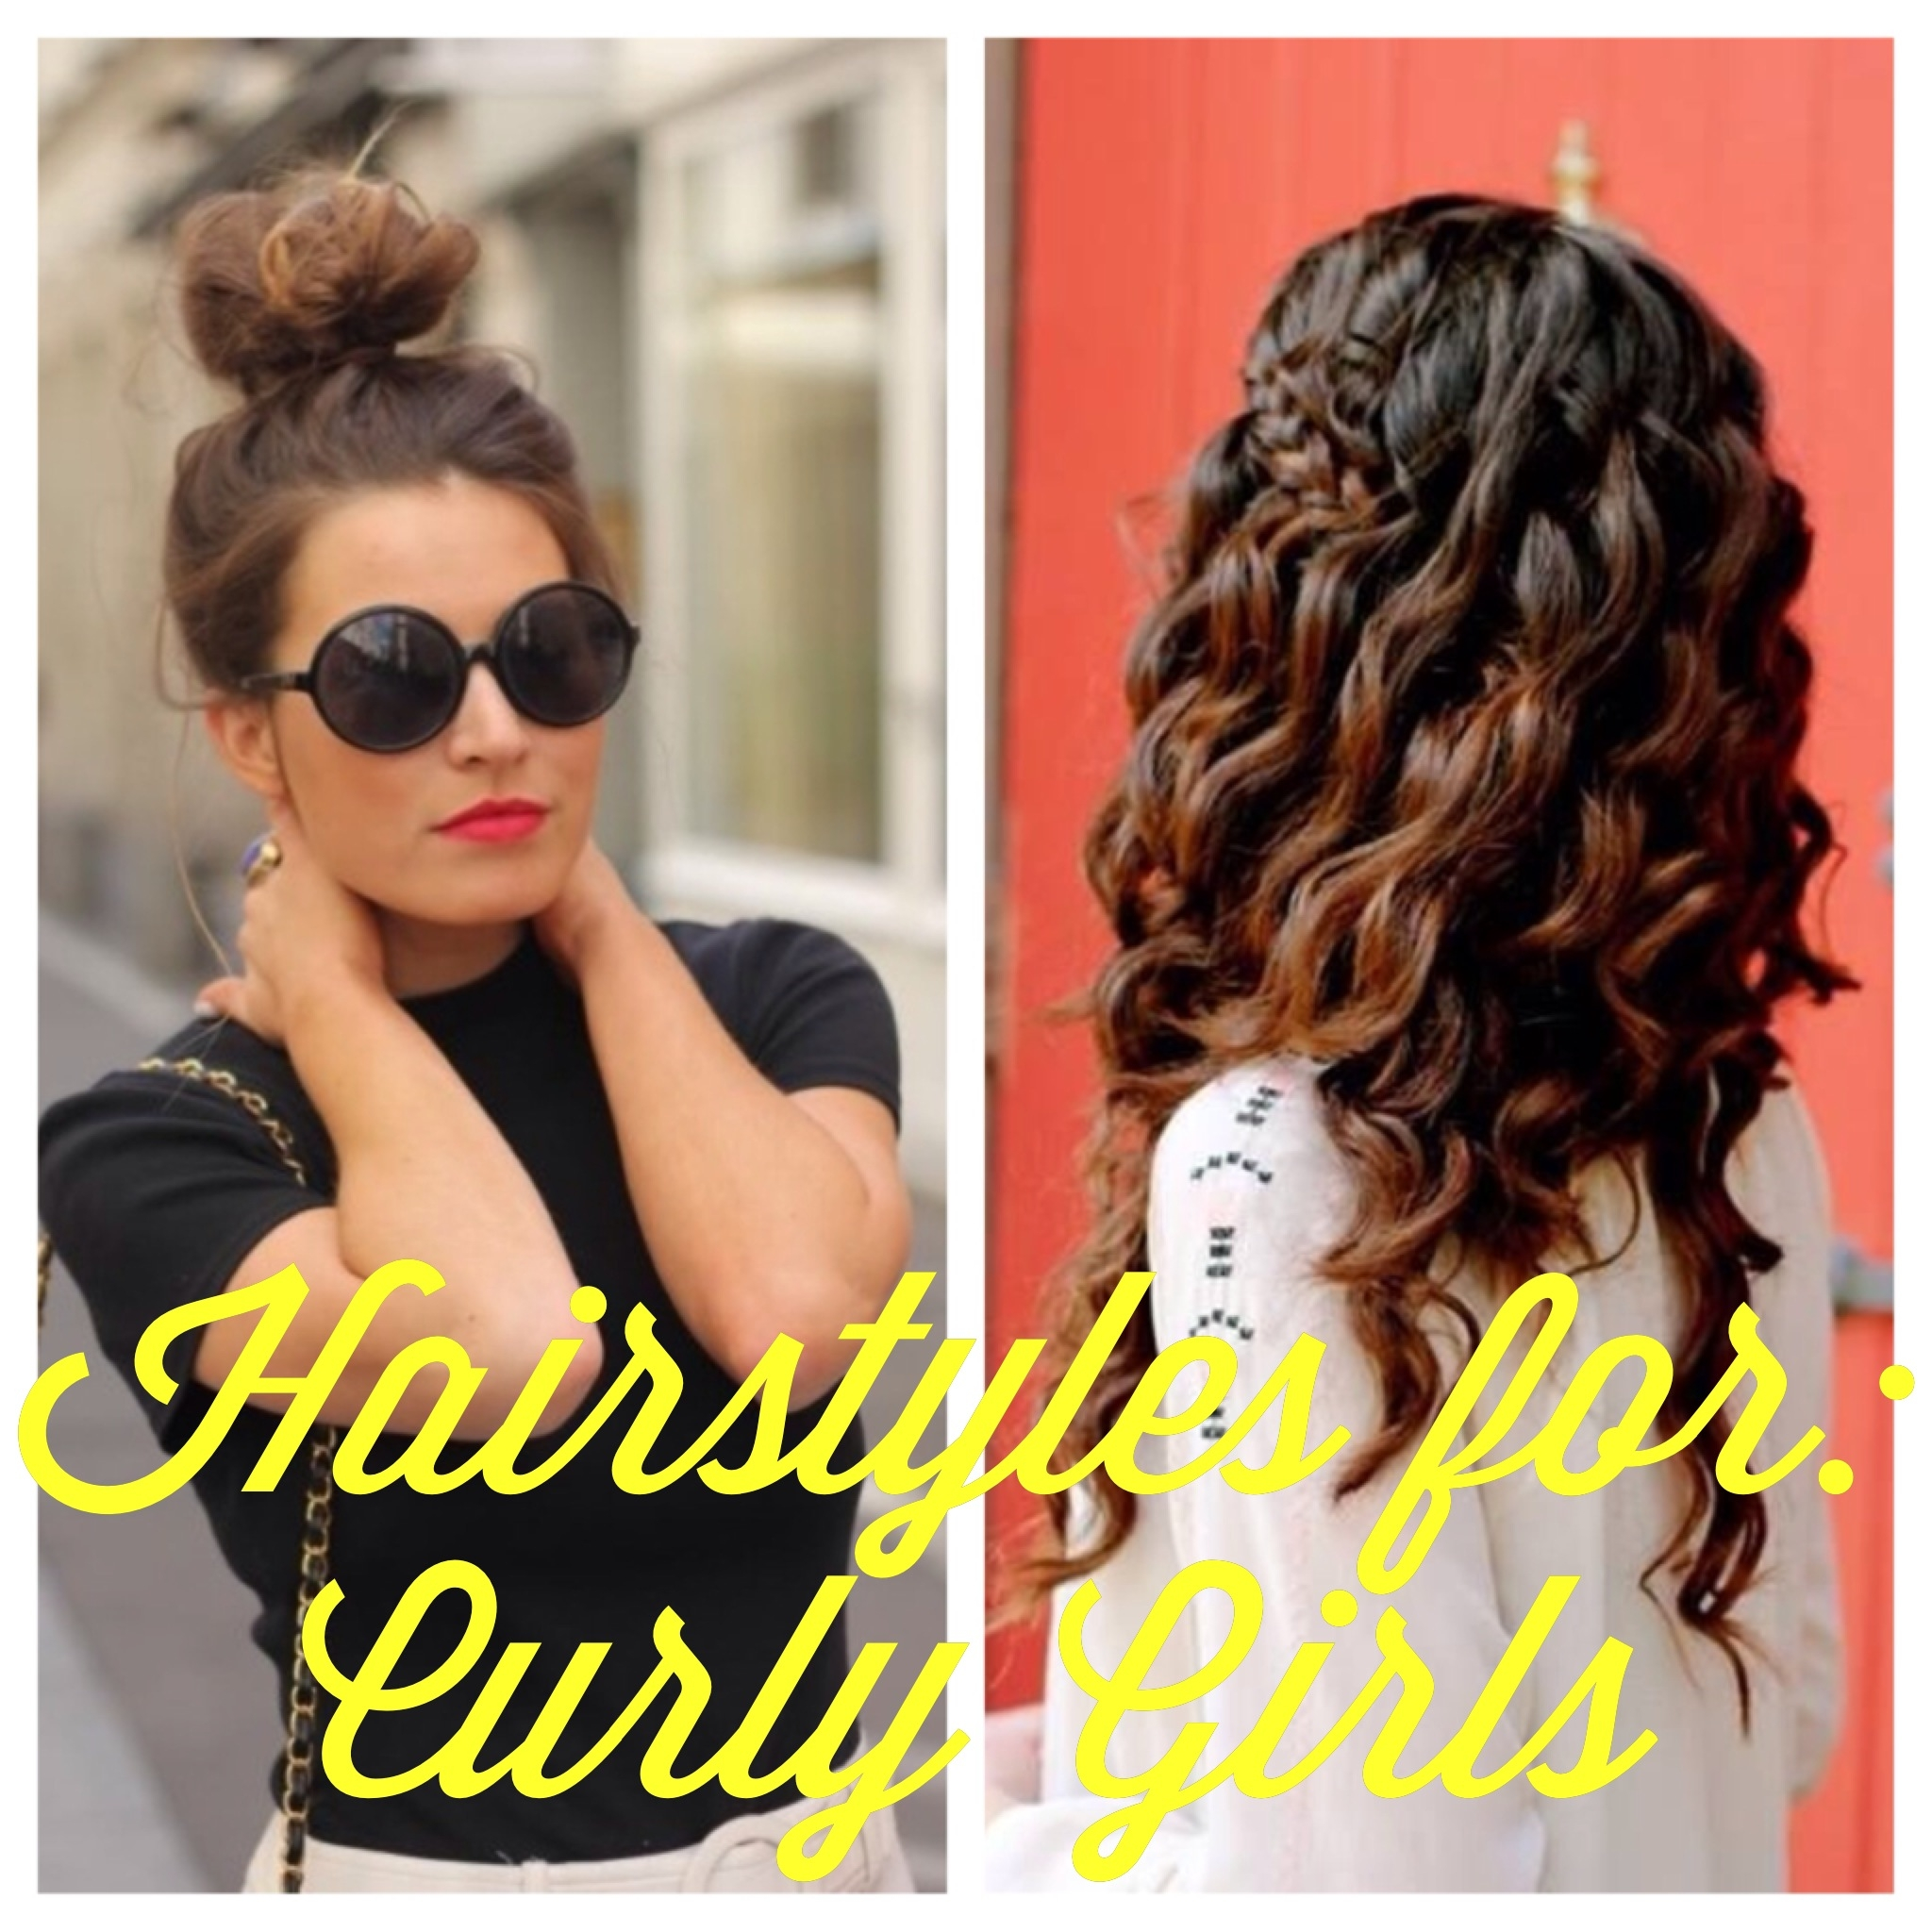 Blogust Day #28 Hairstyles For Curly Girls Classy Girl With Curls